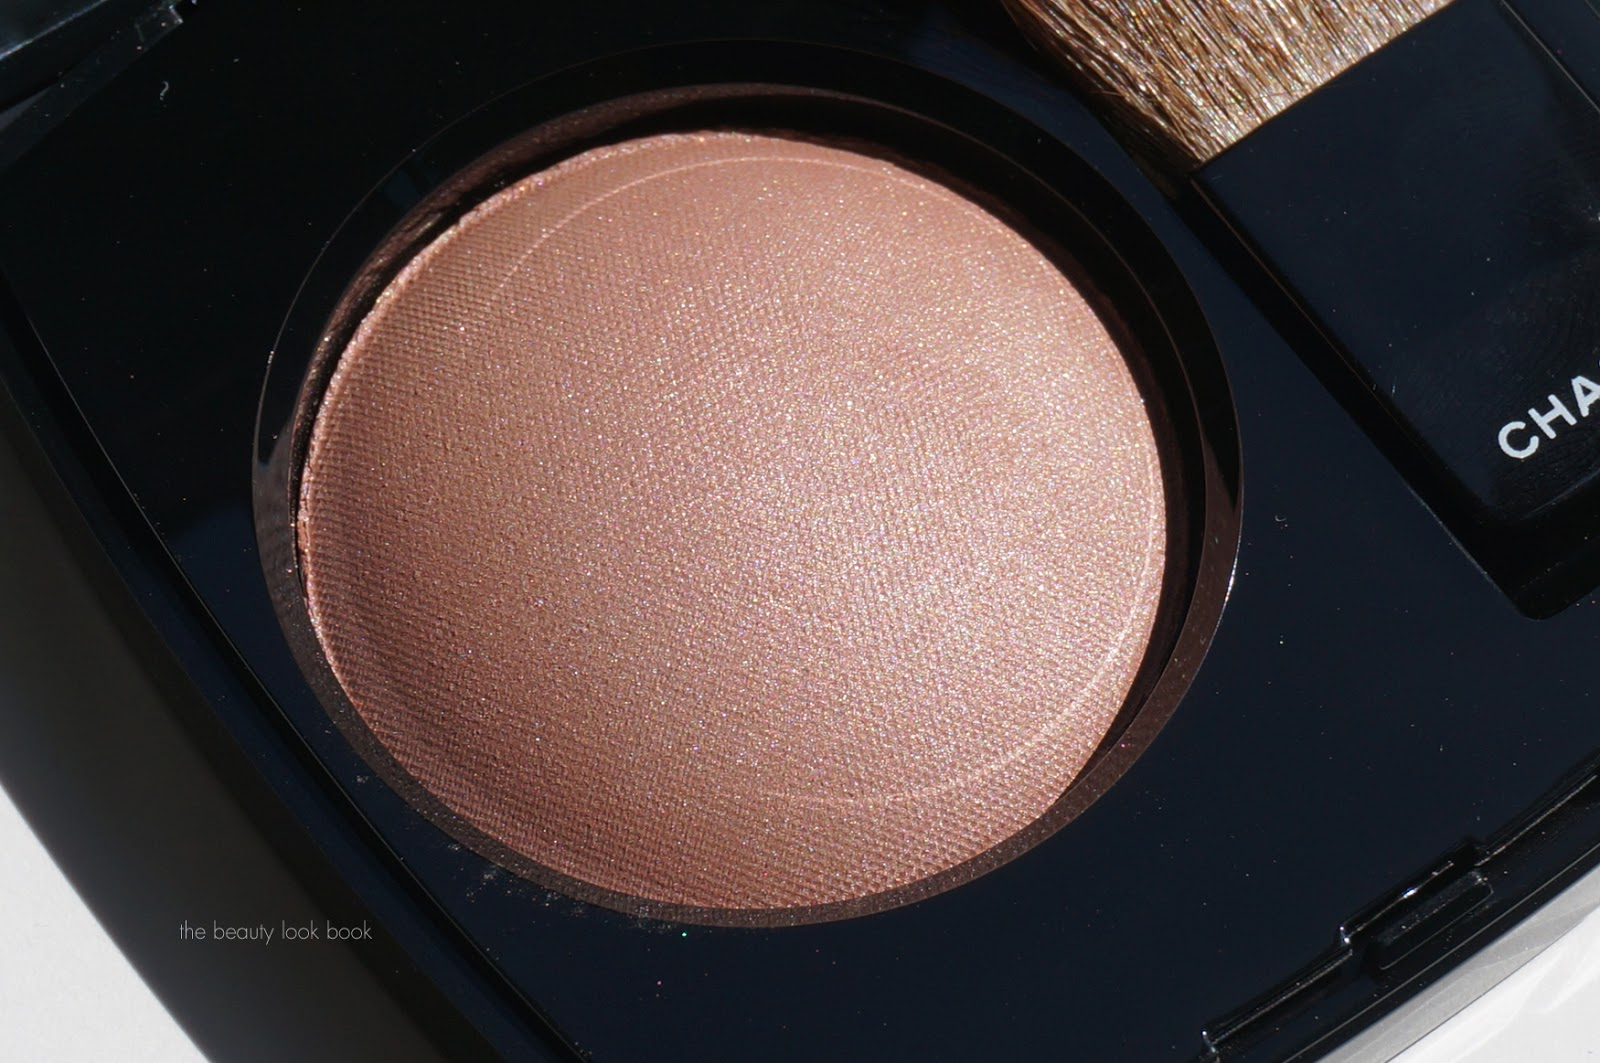 Chanel Joues Contraste Powder Blush in Golden Sun and ...